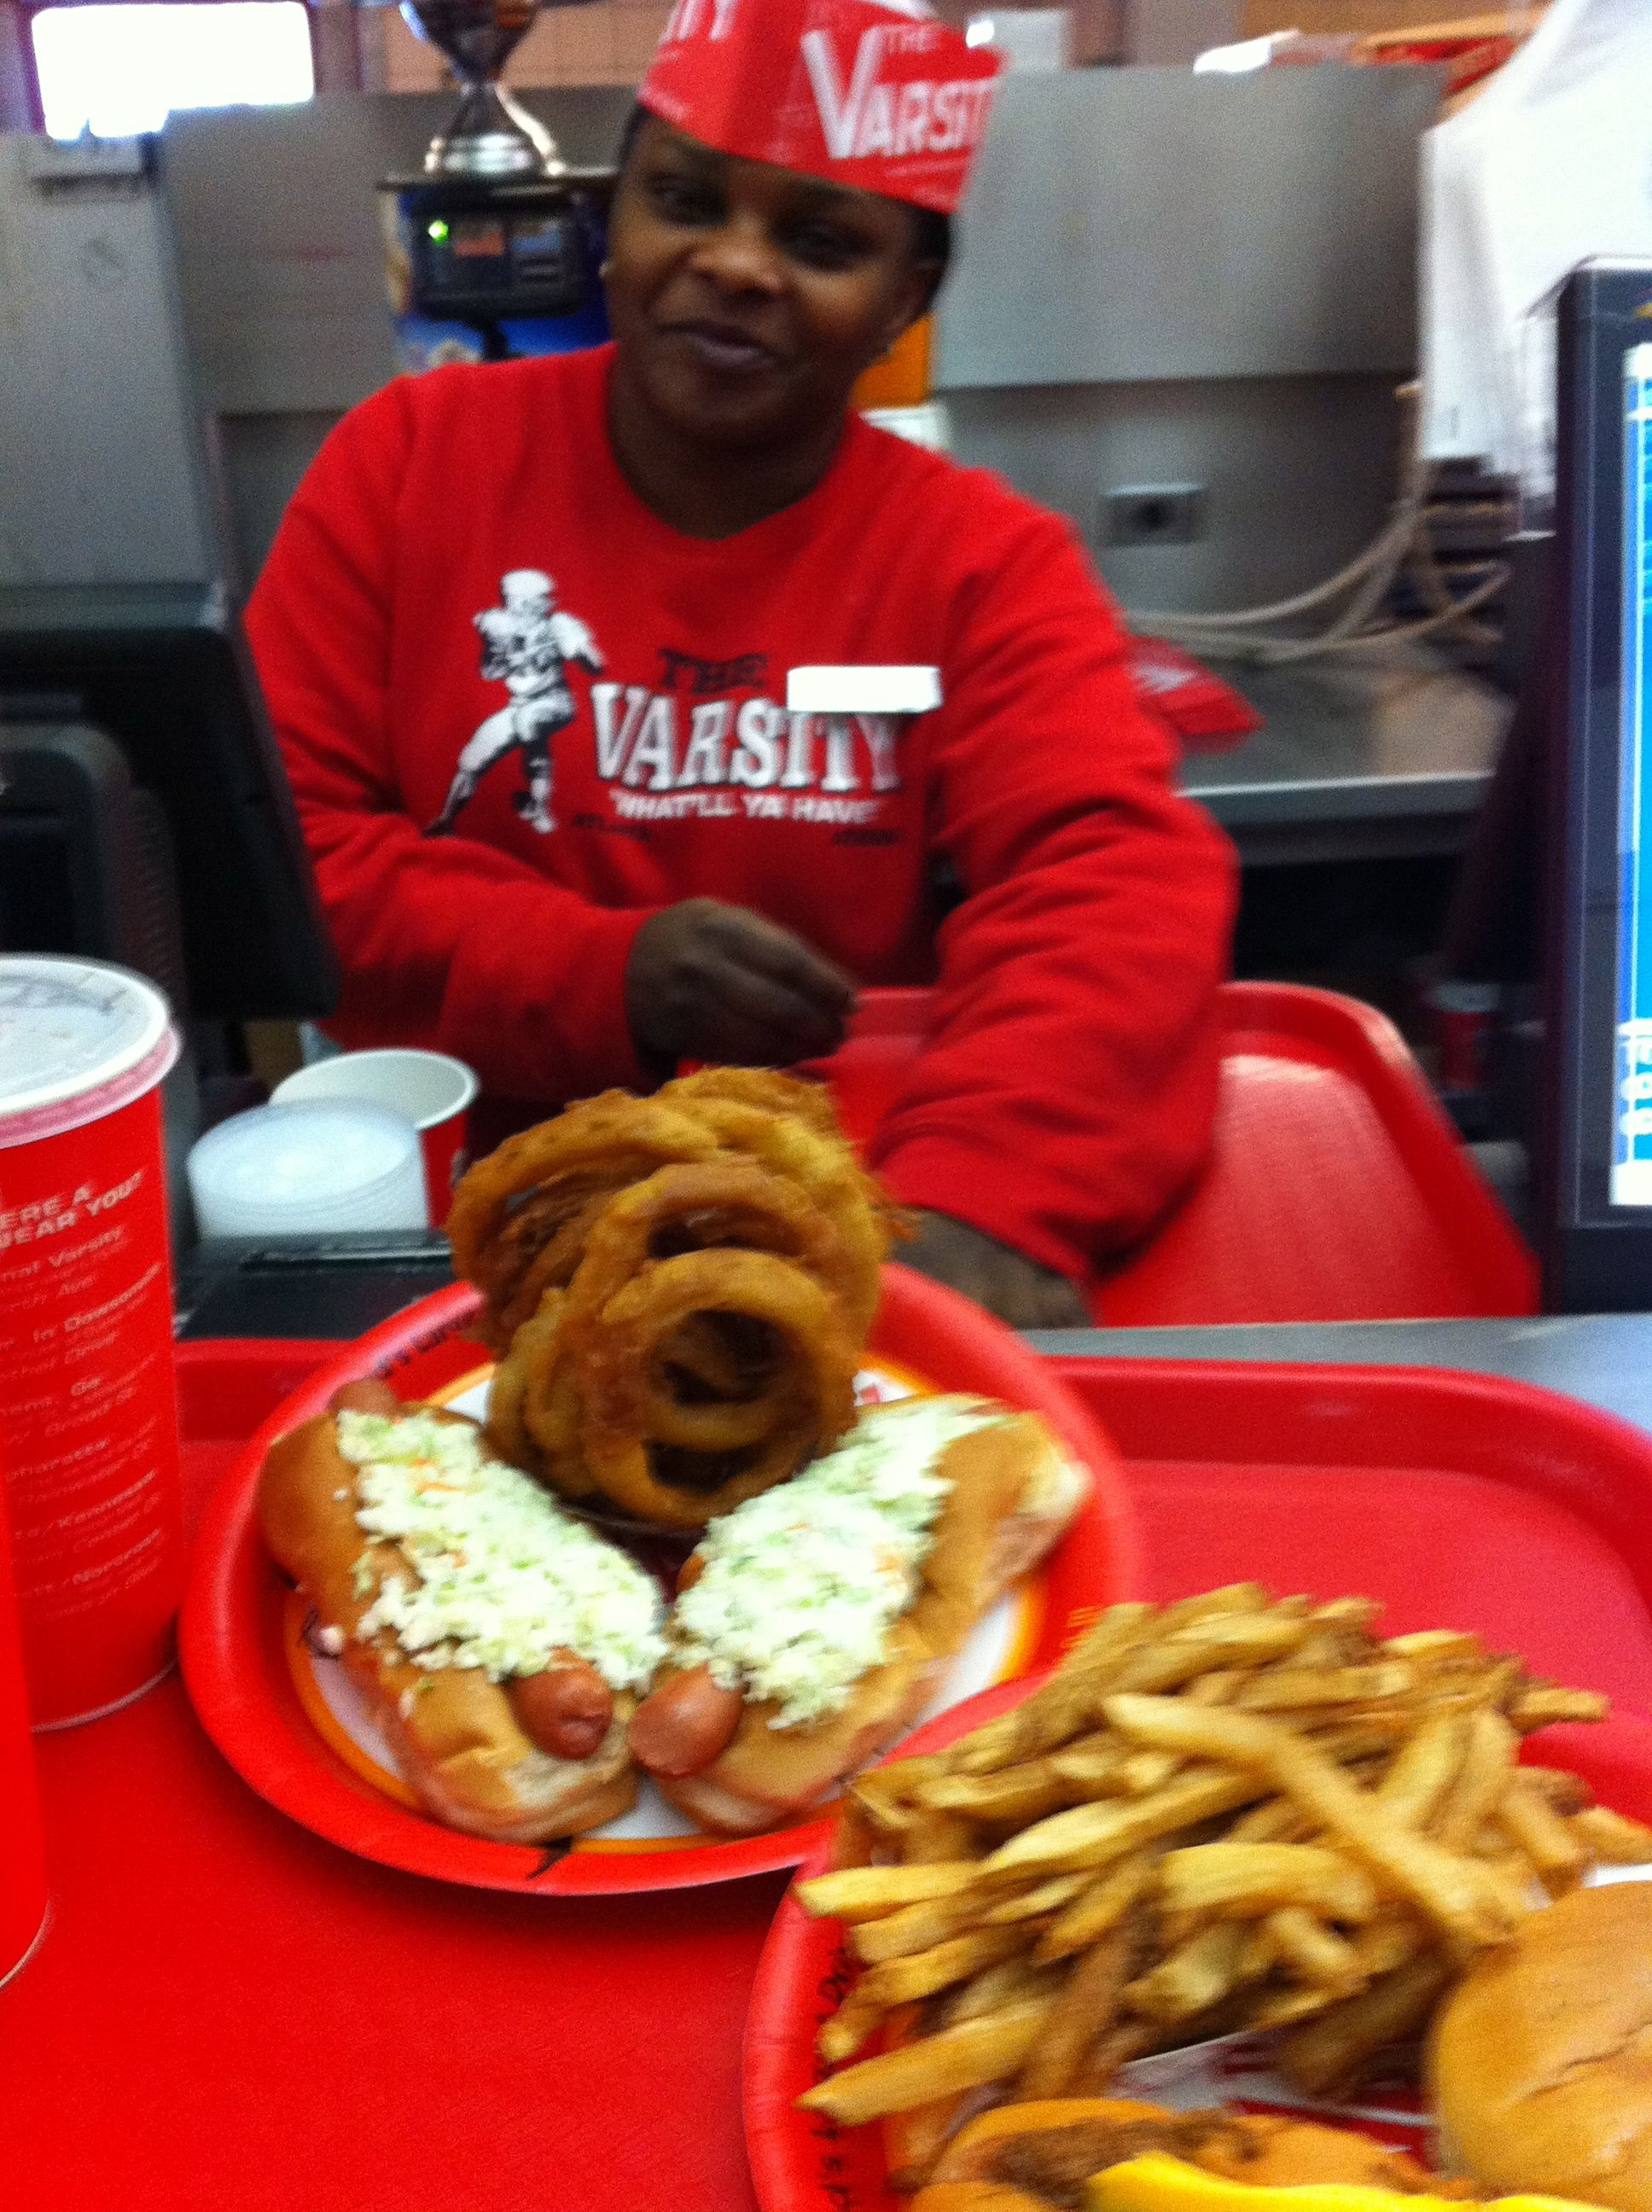 Slaw Dogs and Onion Rings or ANYthing from the Varsity